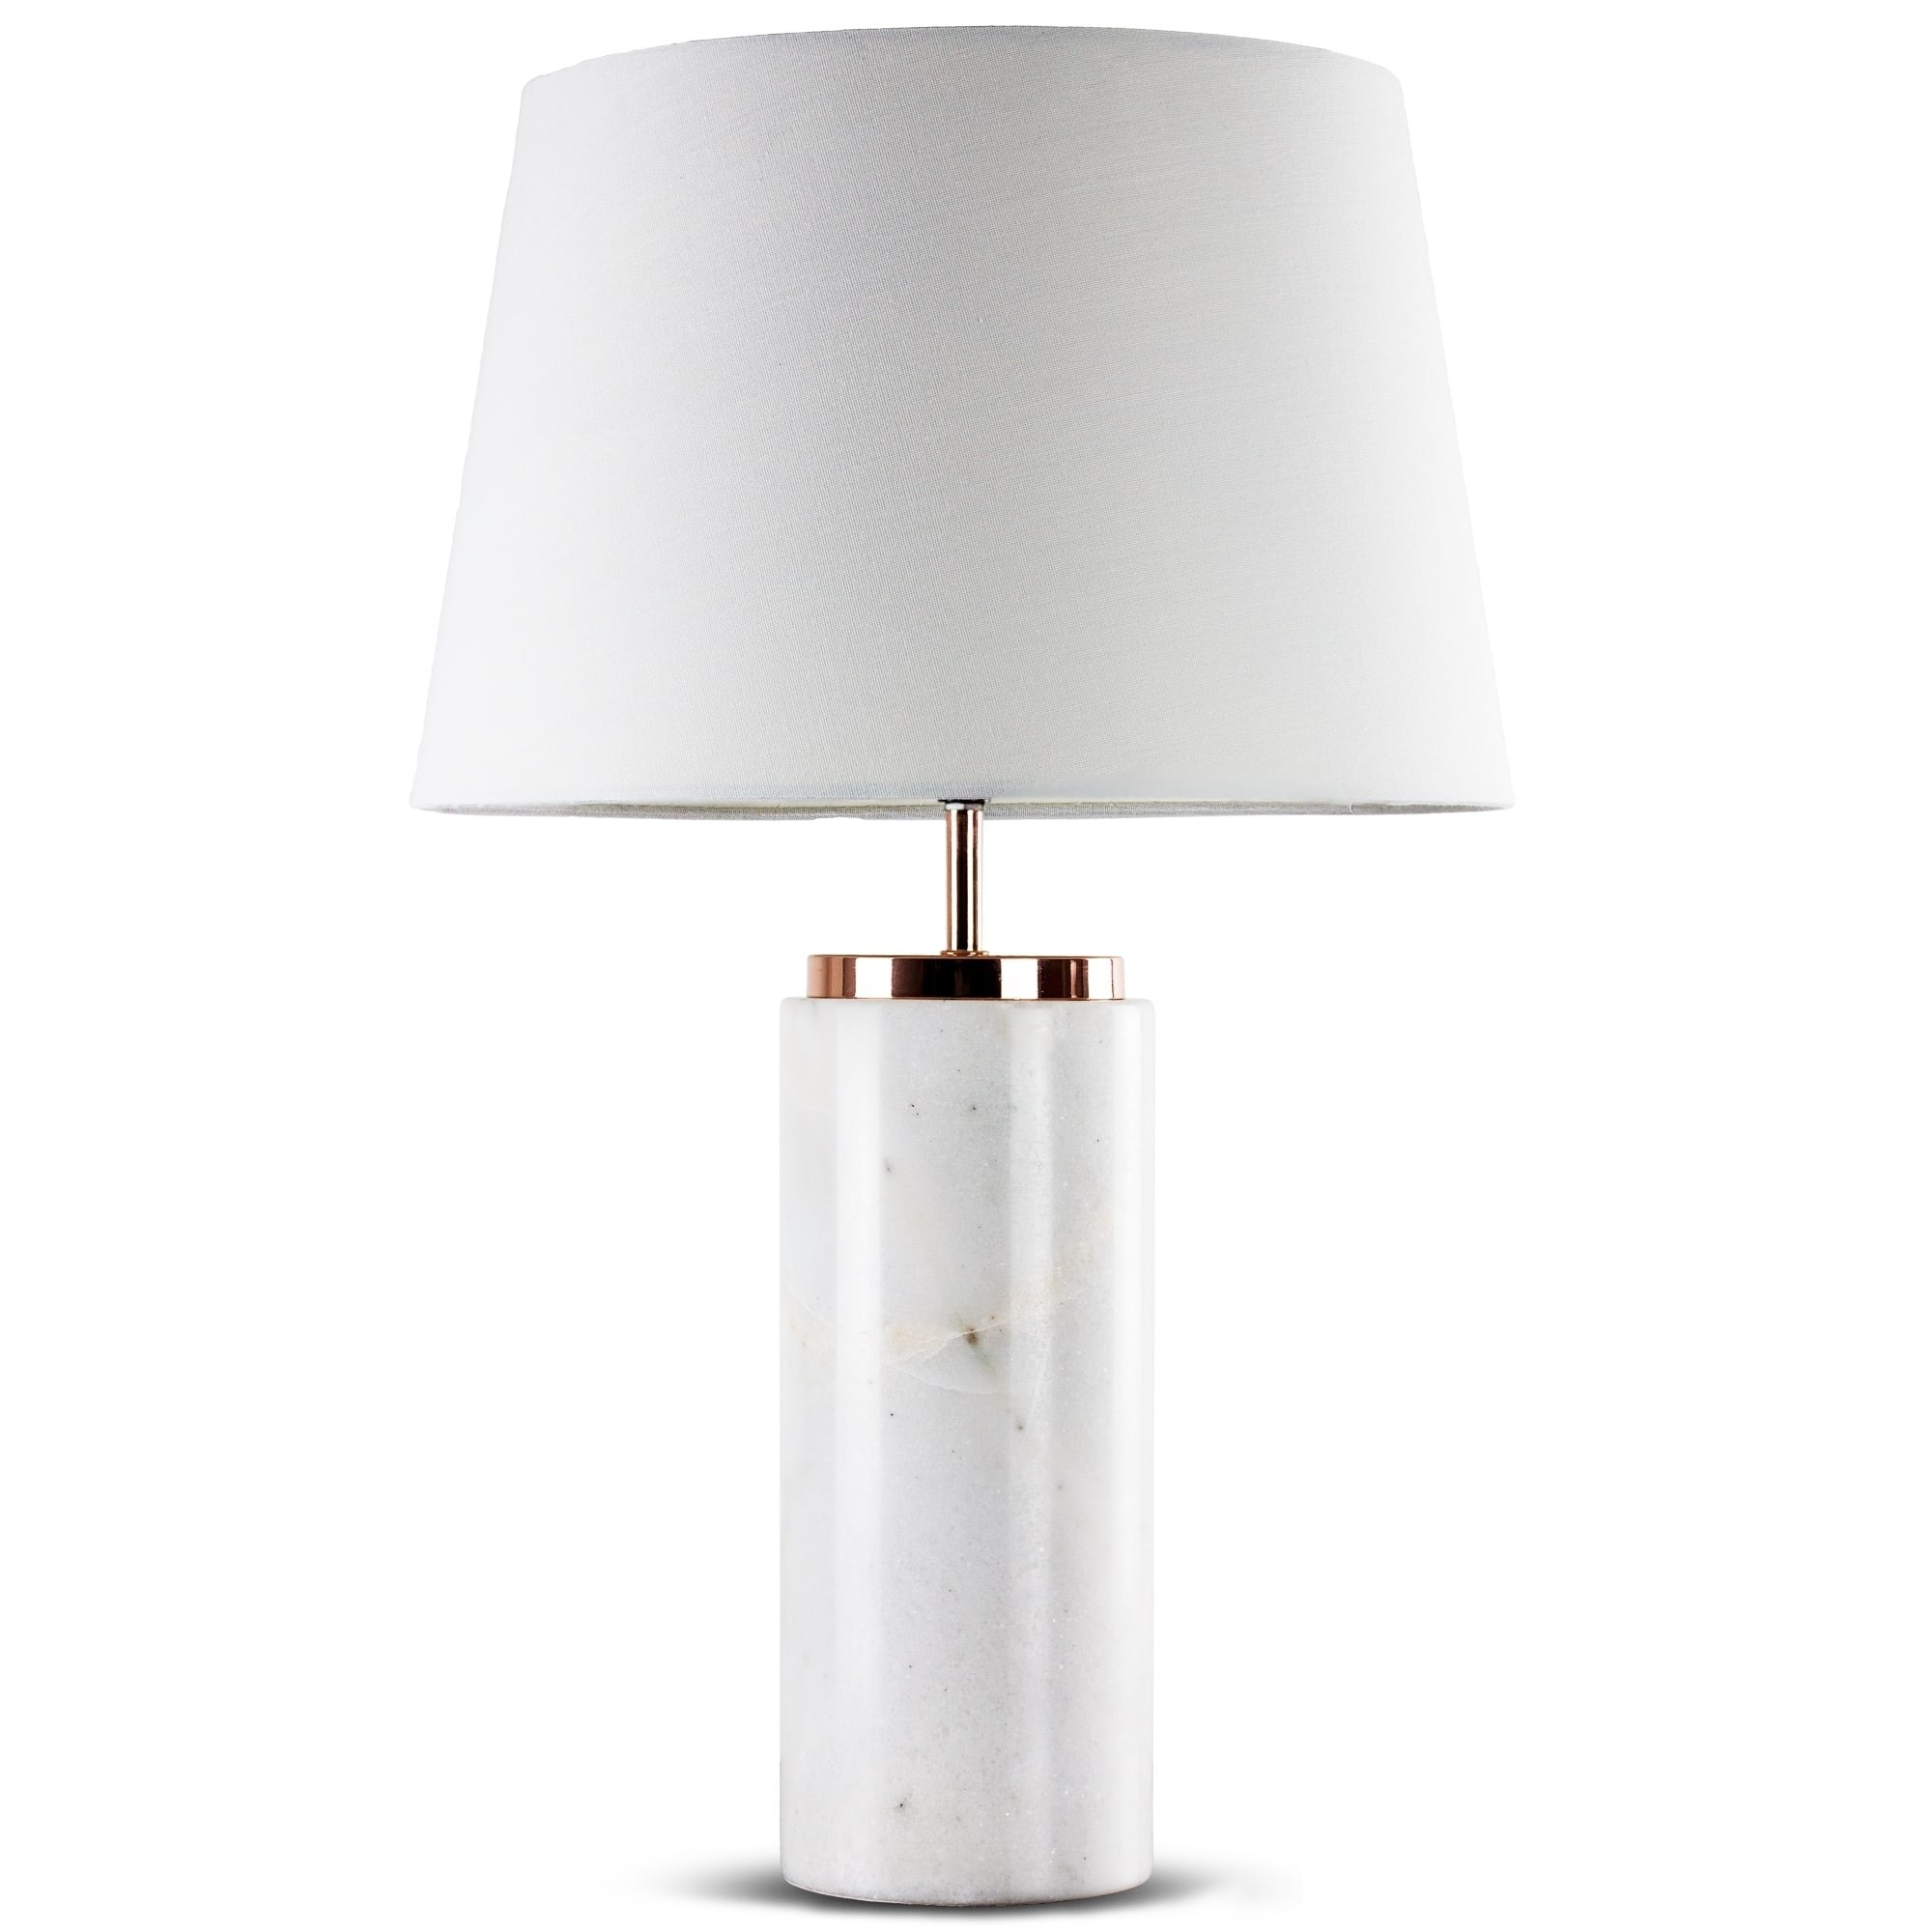 millennium art modern marble inch table lamp free shipping stylish accent with white canvas shade lamps today thin cabinet small vintage tablette prix large cloth dining room